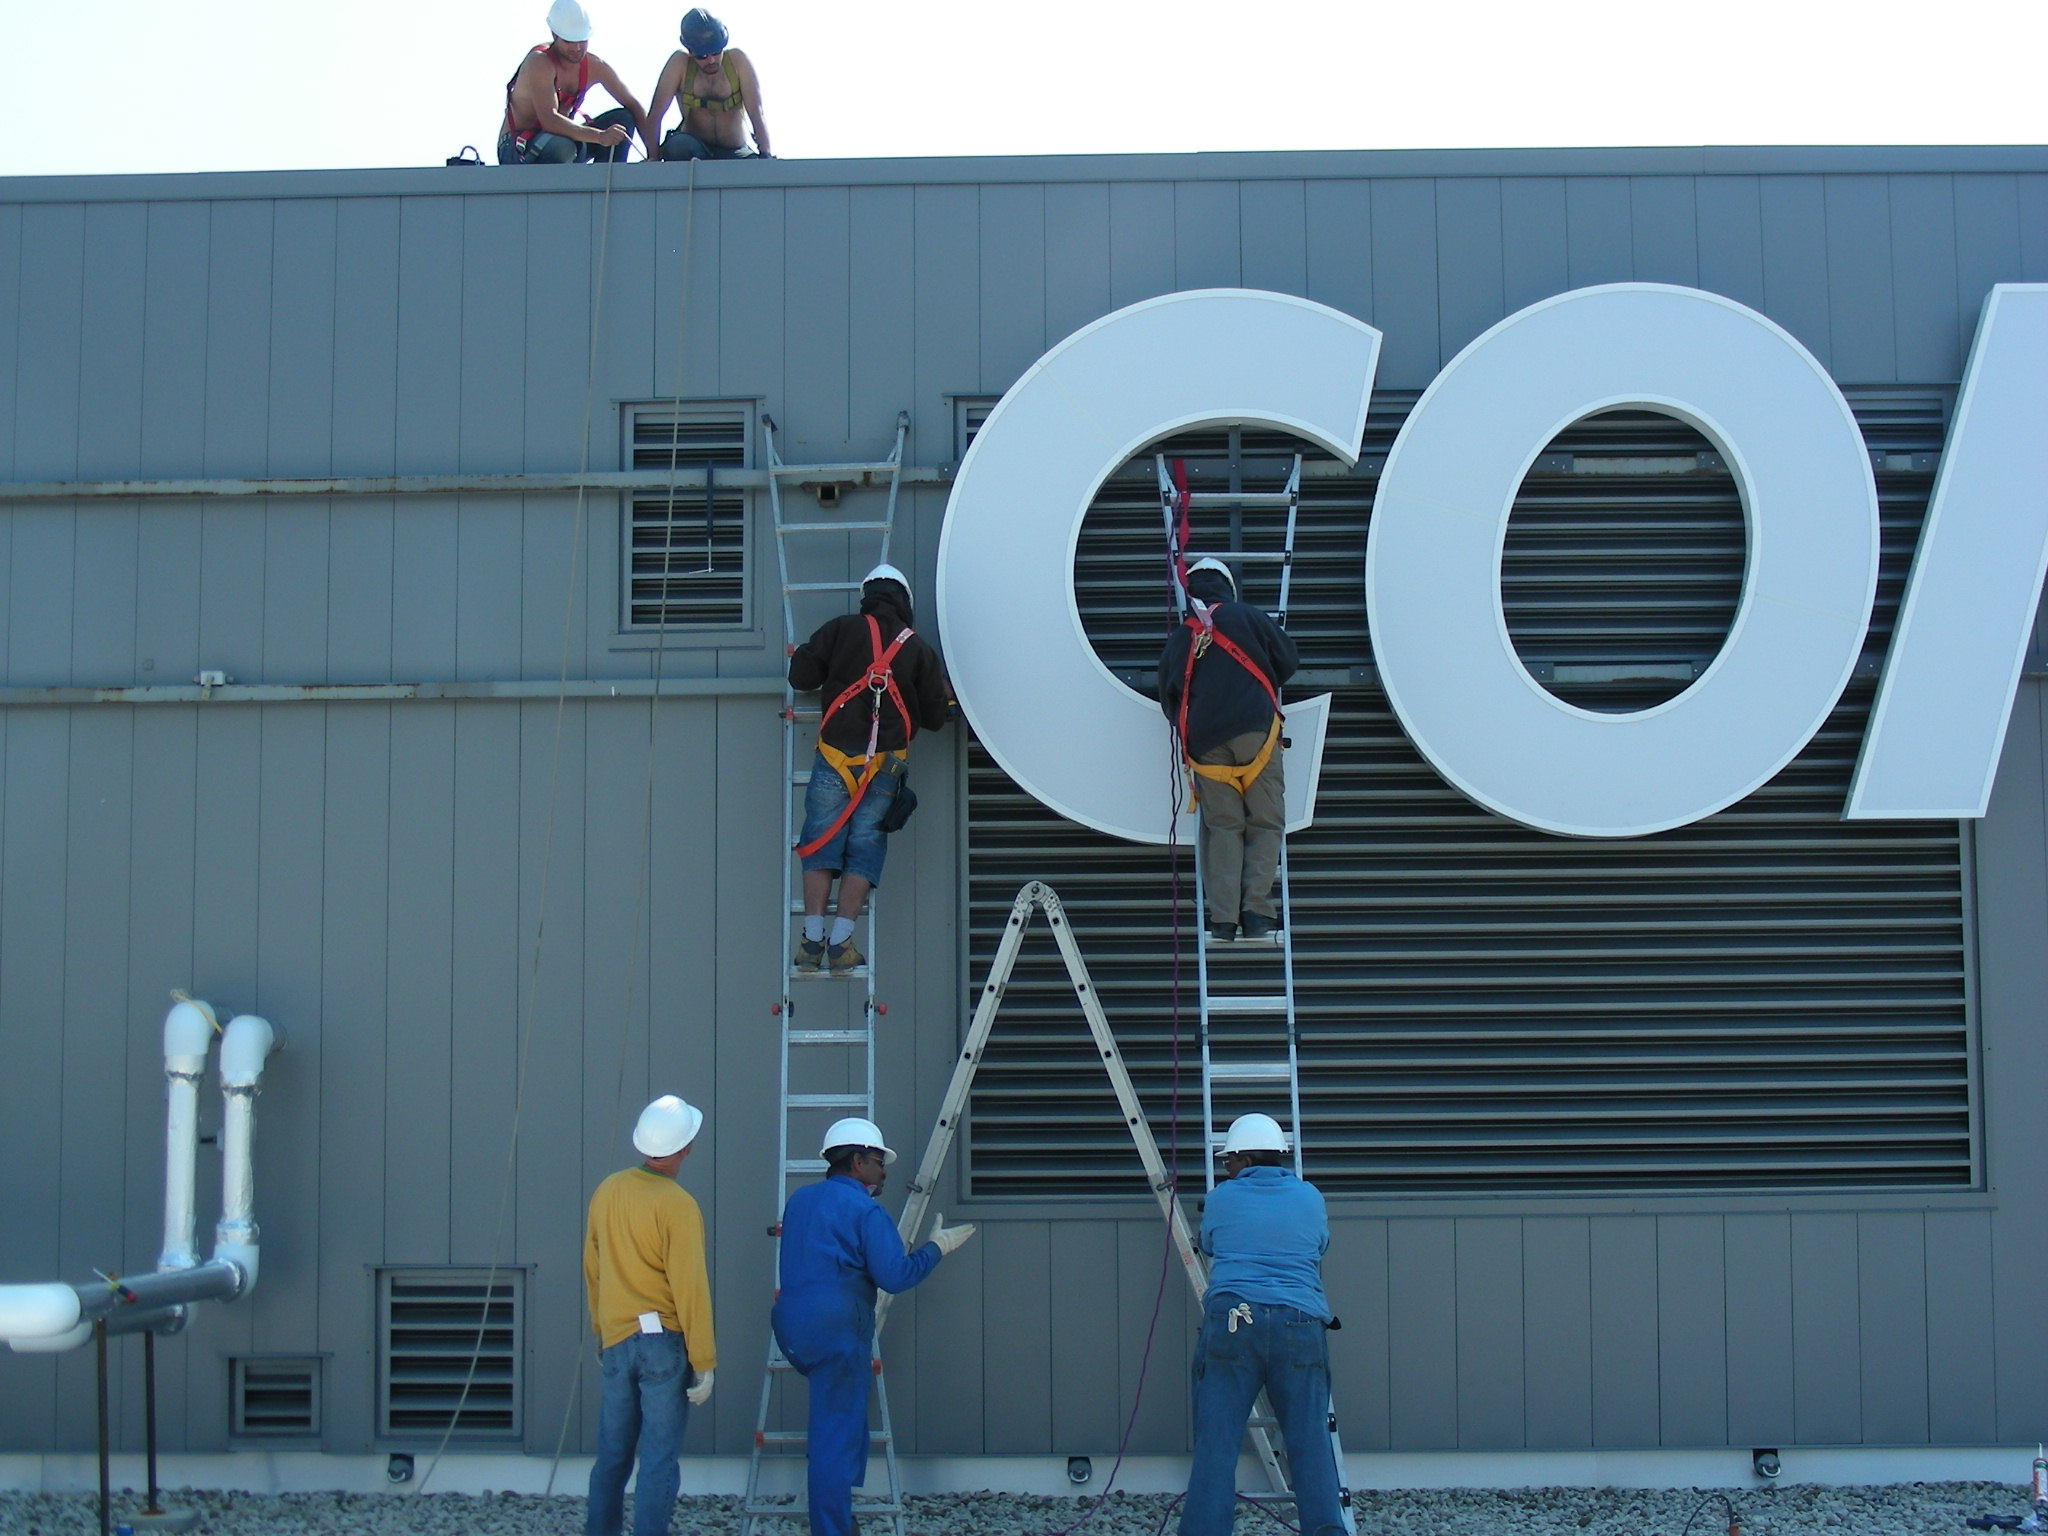 12 ft High LED Lit Channels Letters being installed